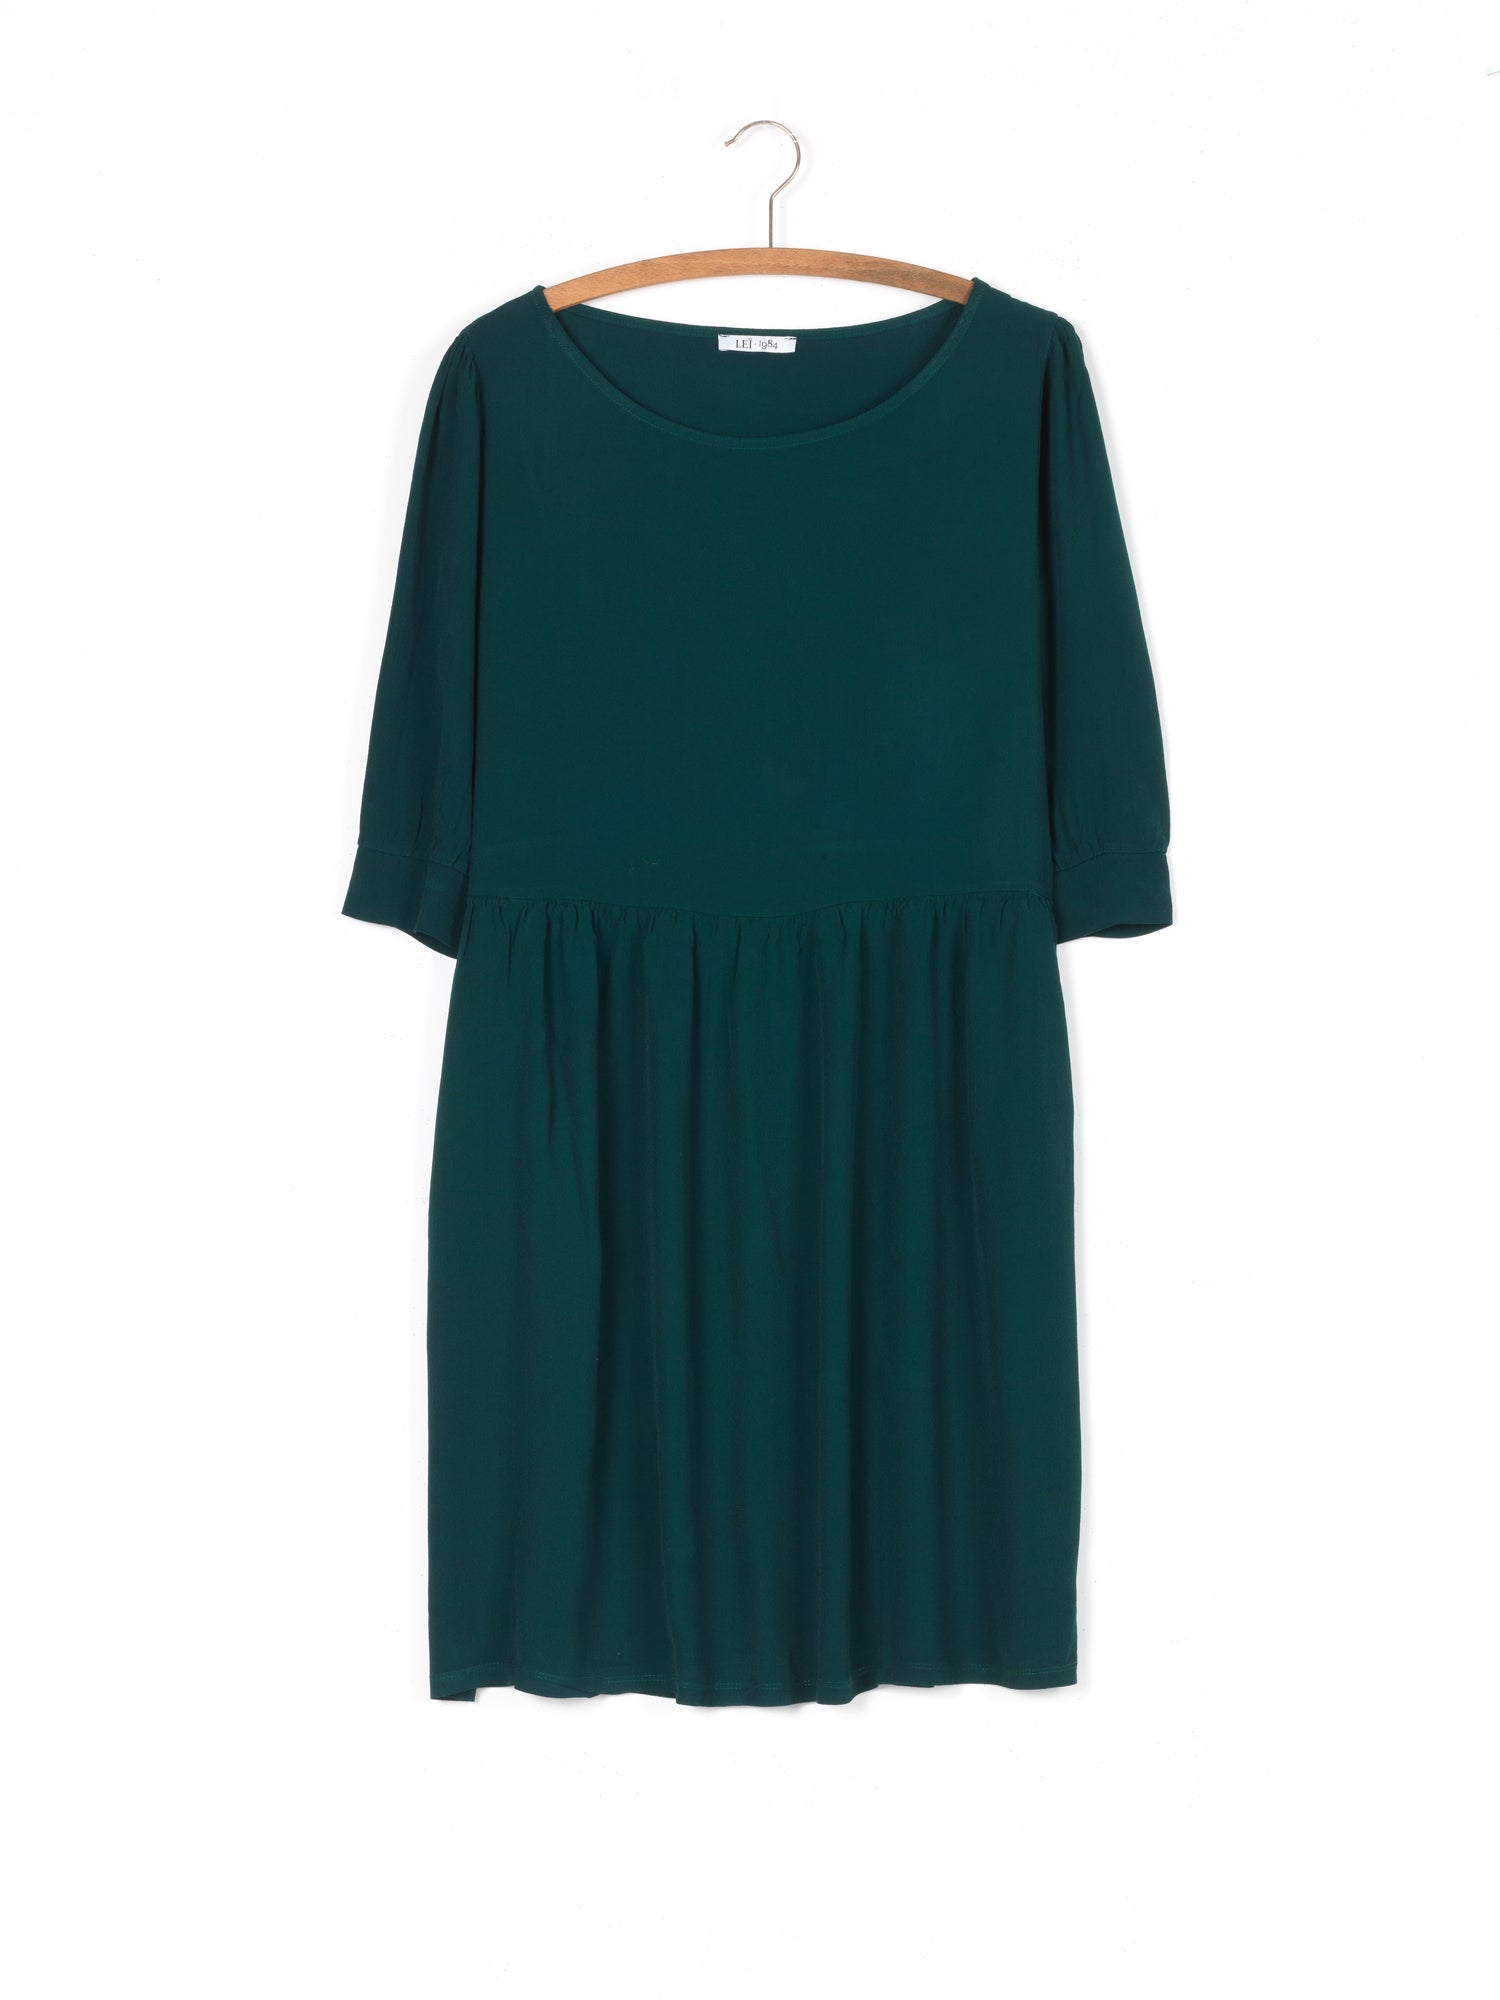 Image of Robe crêpe viscose OCEANE 100€ -60%